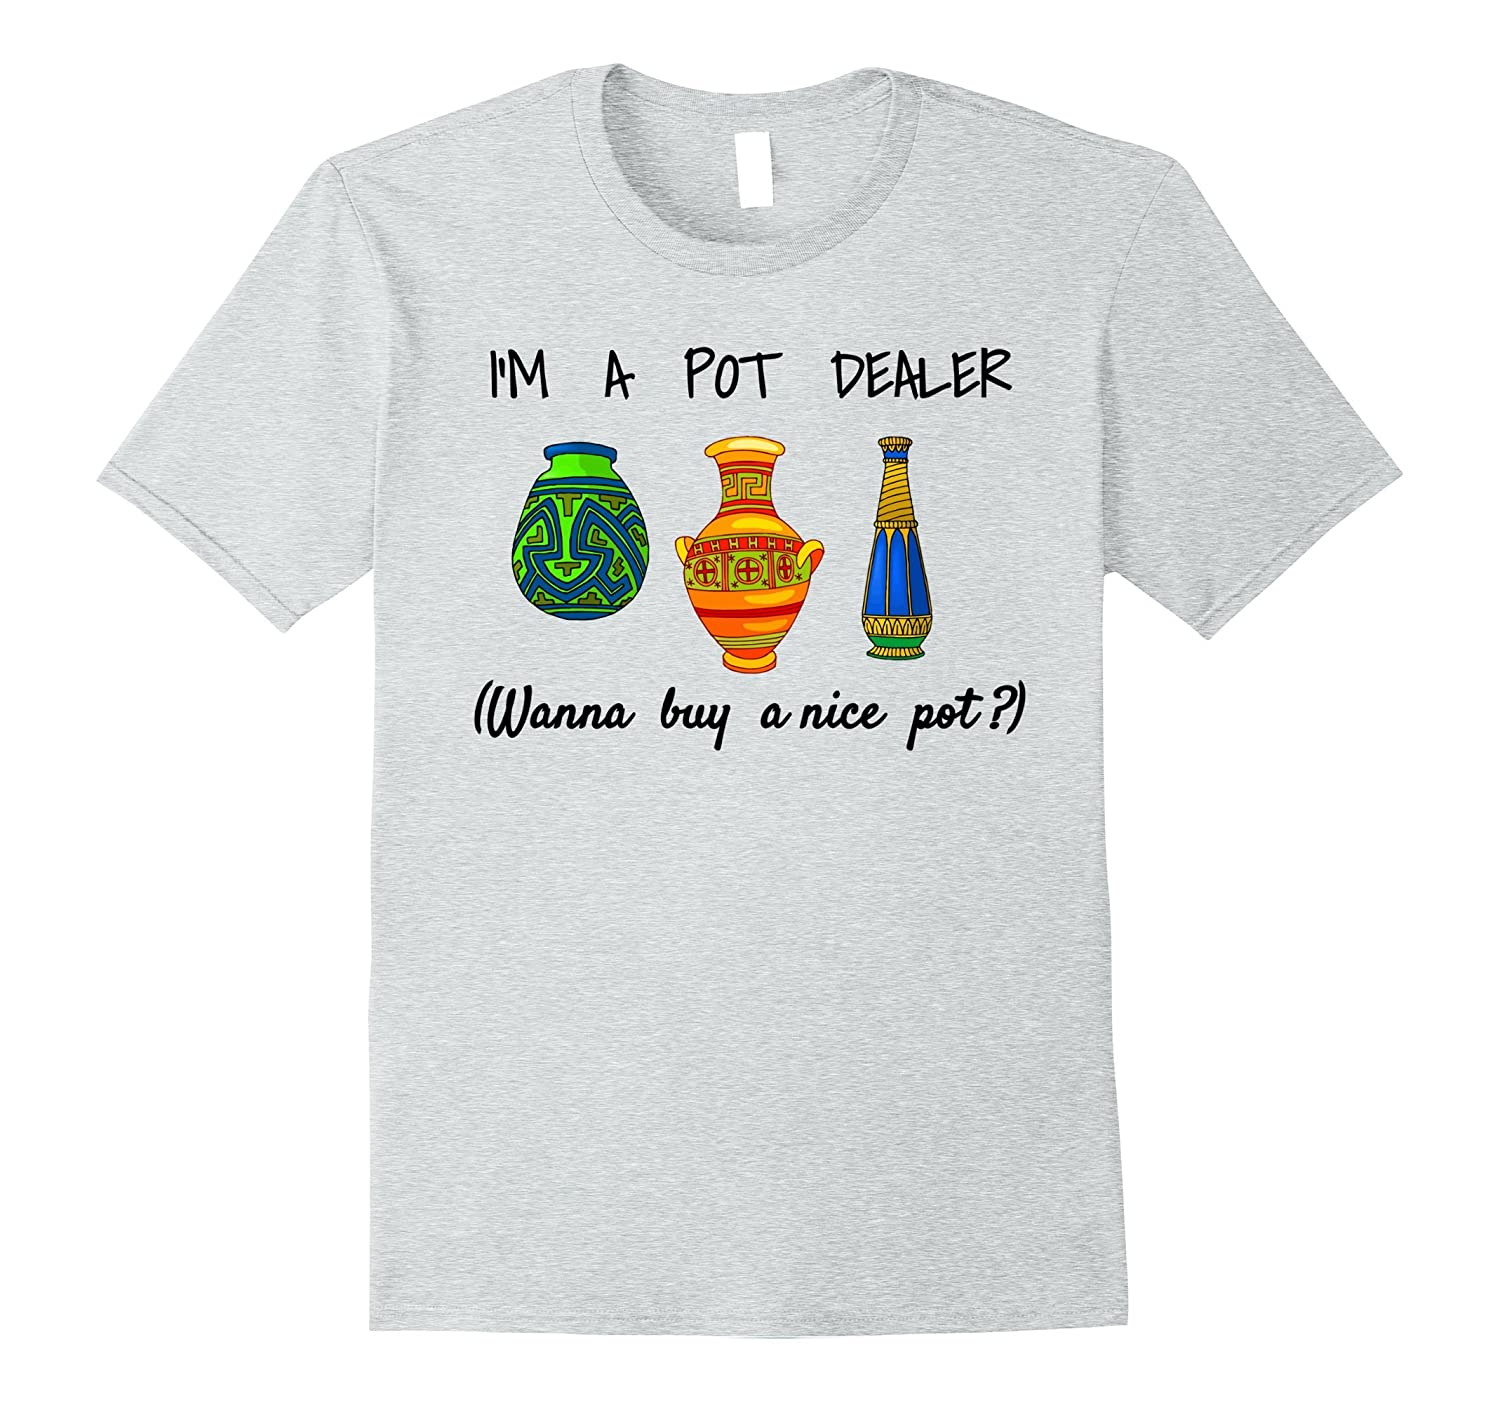 6d6776b8 Funny pottery t shirt Pun for sculptor Artists Gift Idea-PL – theteejob